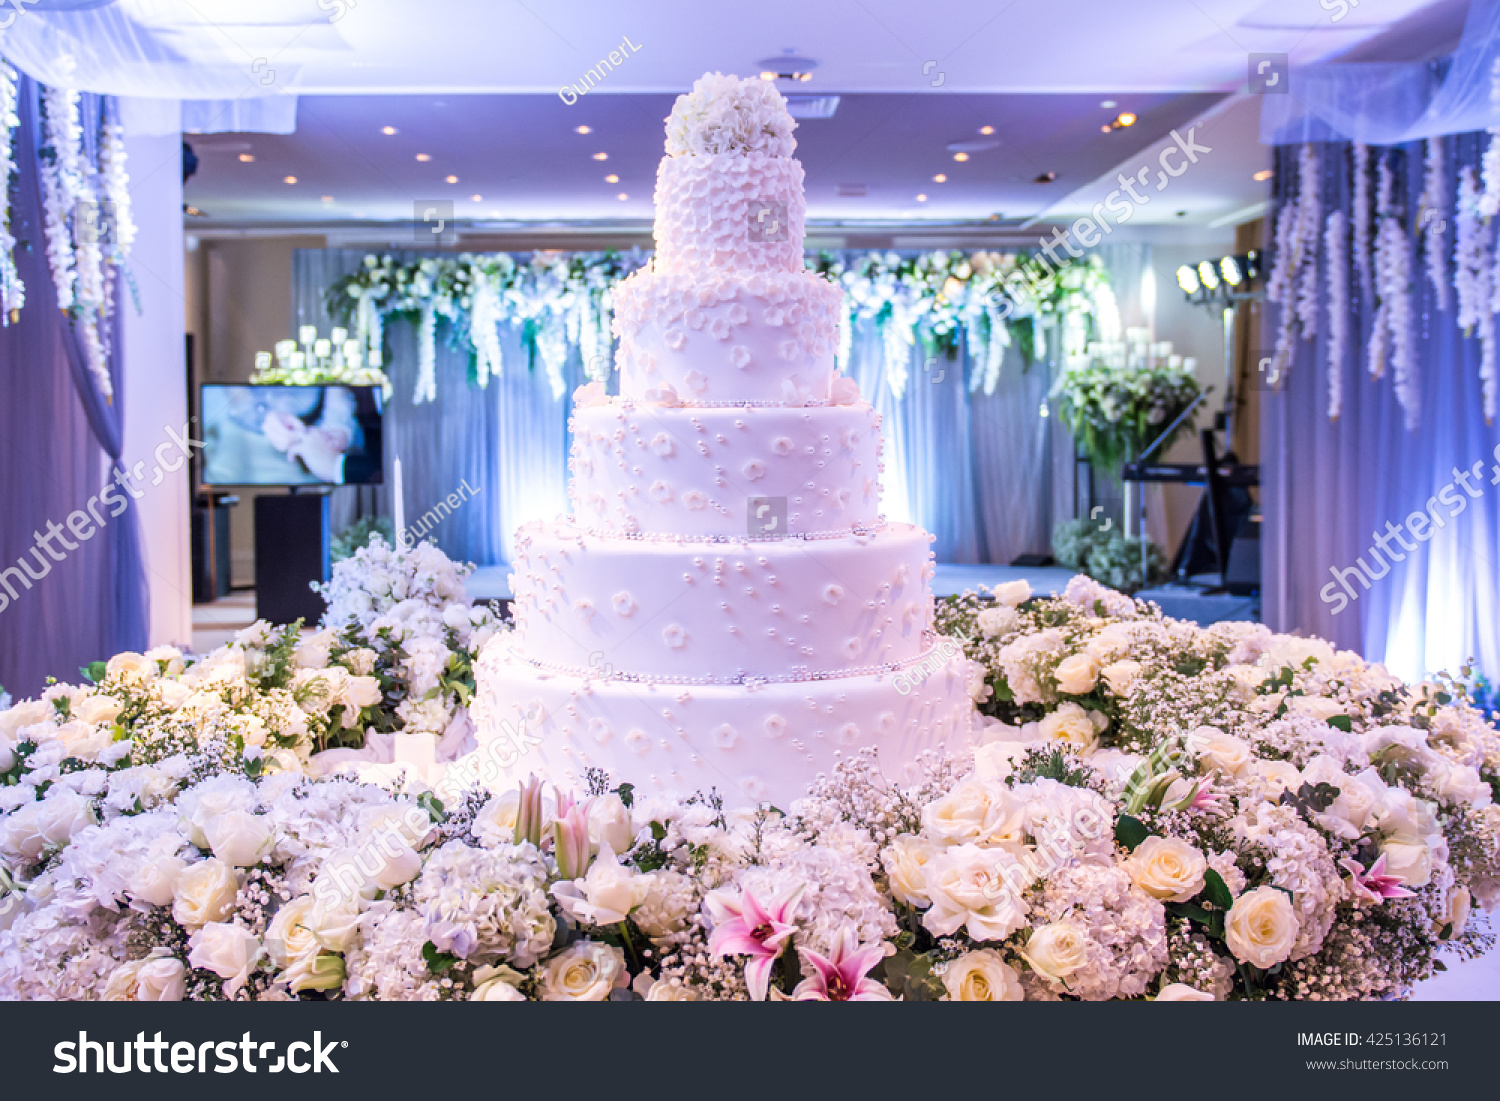 Beautiful Wedding Cake Decoration Wedding Reception Stock Photo